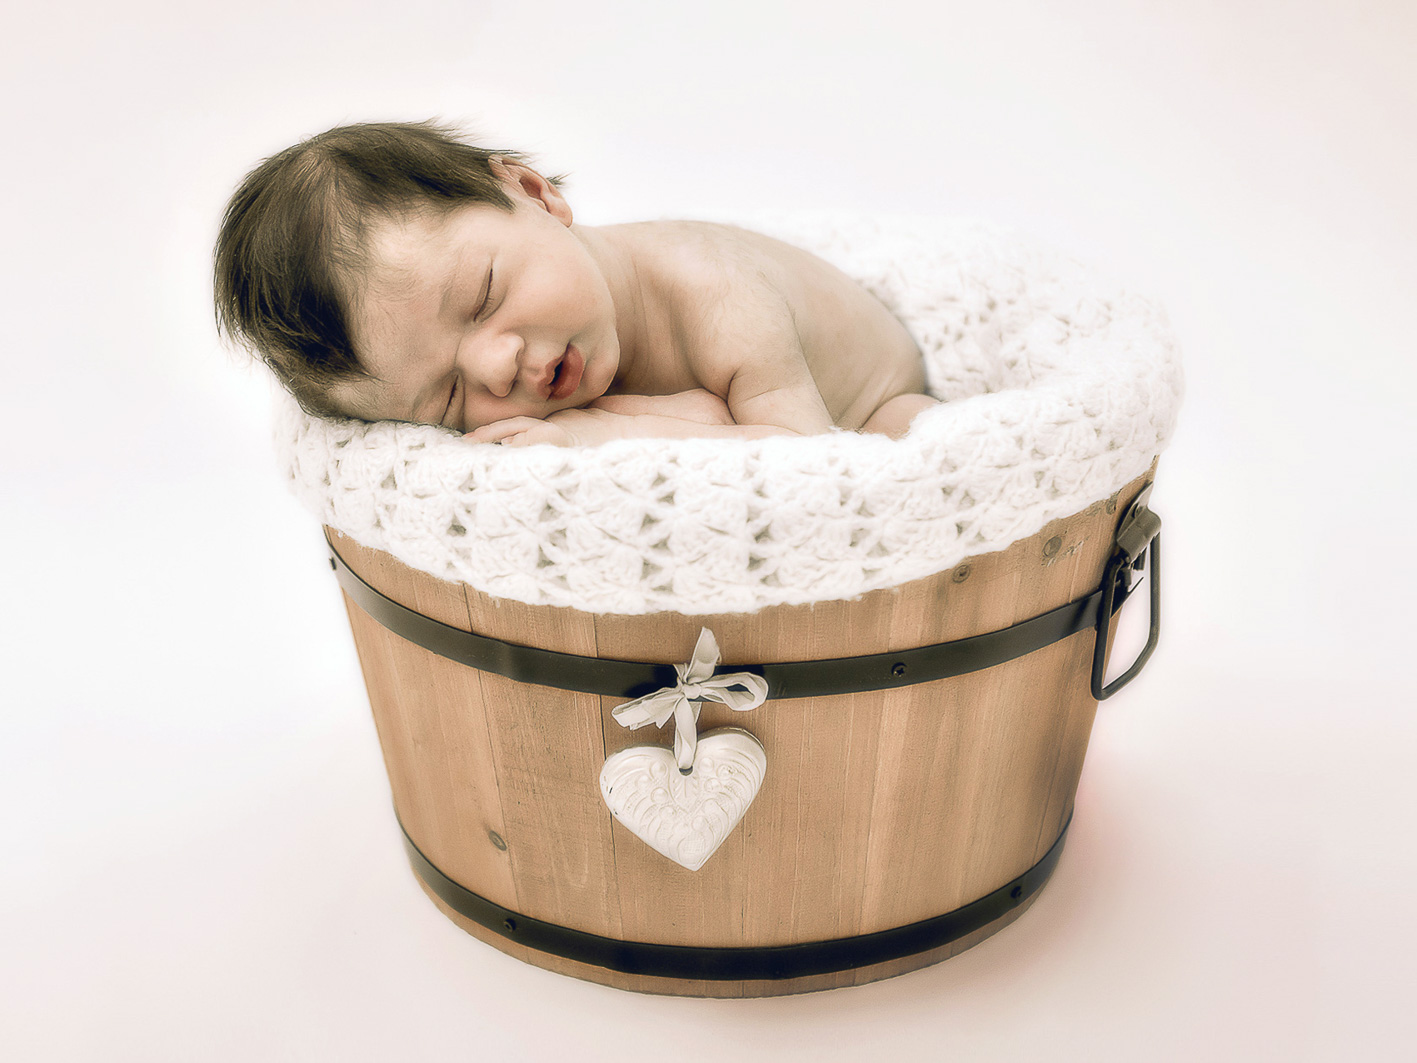 newborn-tagg-photography-18